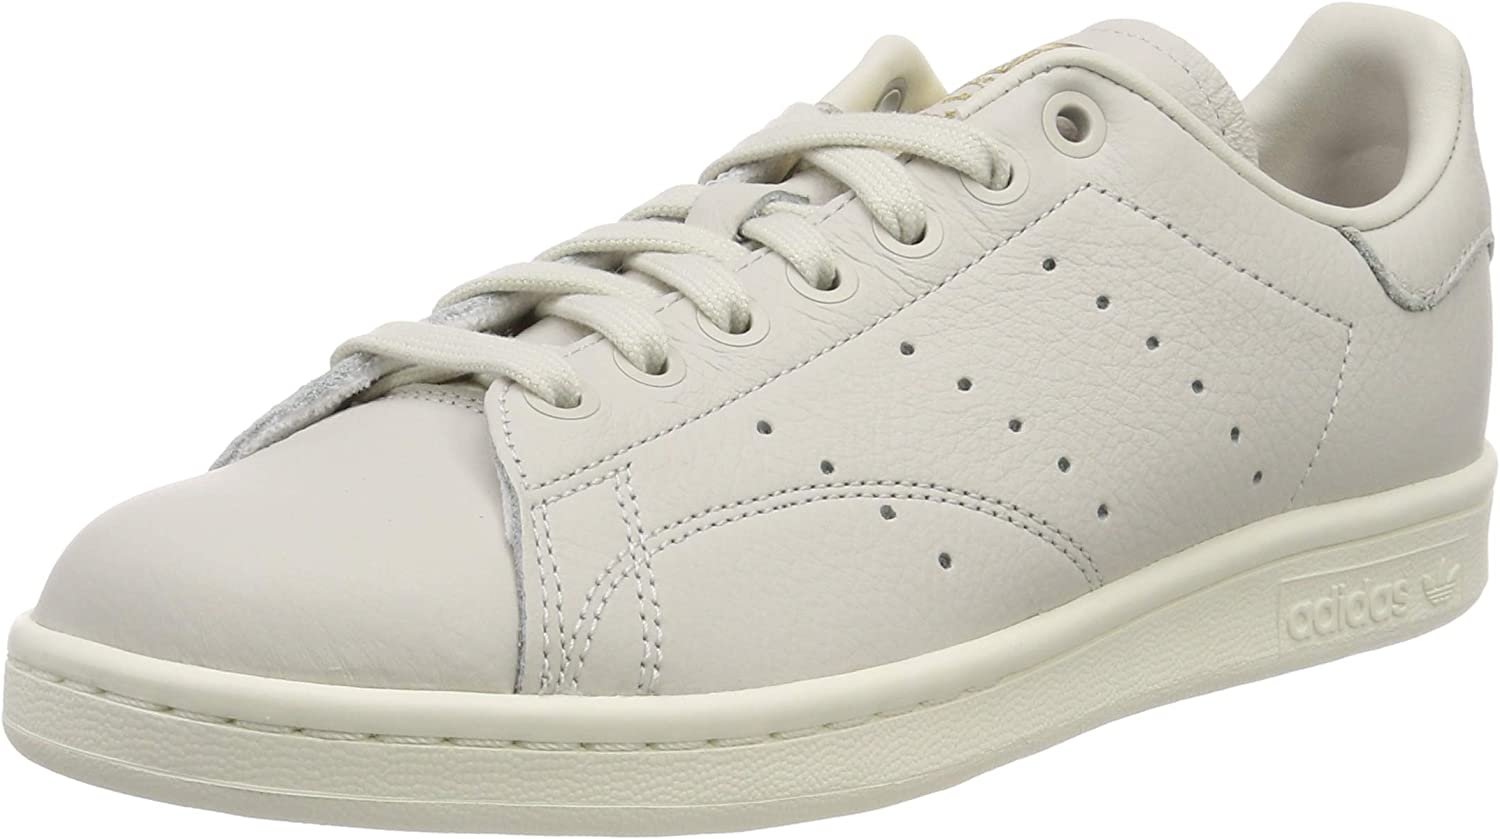 adidas Originals Stan Smith Womens Leather Sneakers